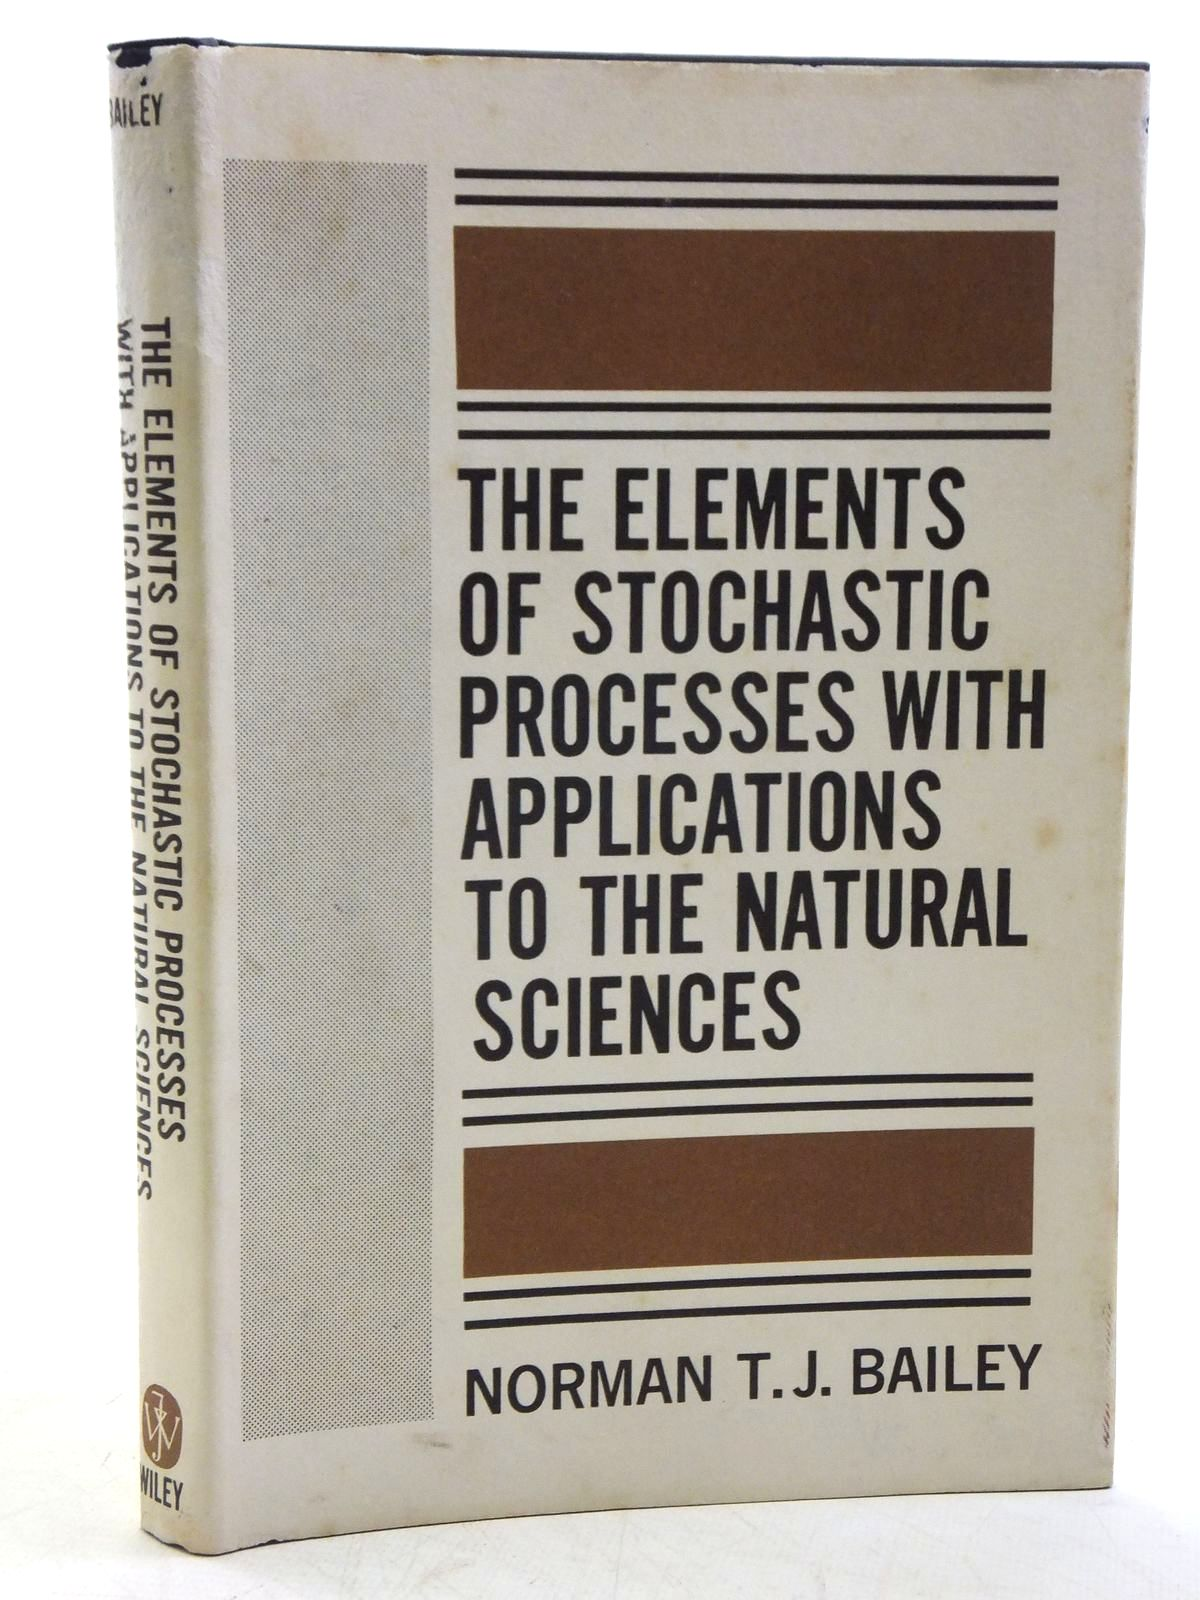 Photo of THE ELEMENTS OF STOCHASTIC PROCESSES written by Bailey, Norman T.J. published by John Wiley & Sons (STOCK CODE: 2120468)  for sale by Stella & Rose's Books